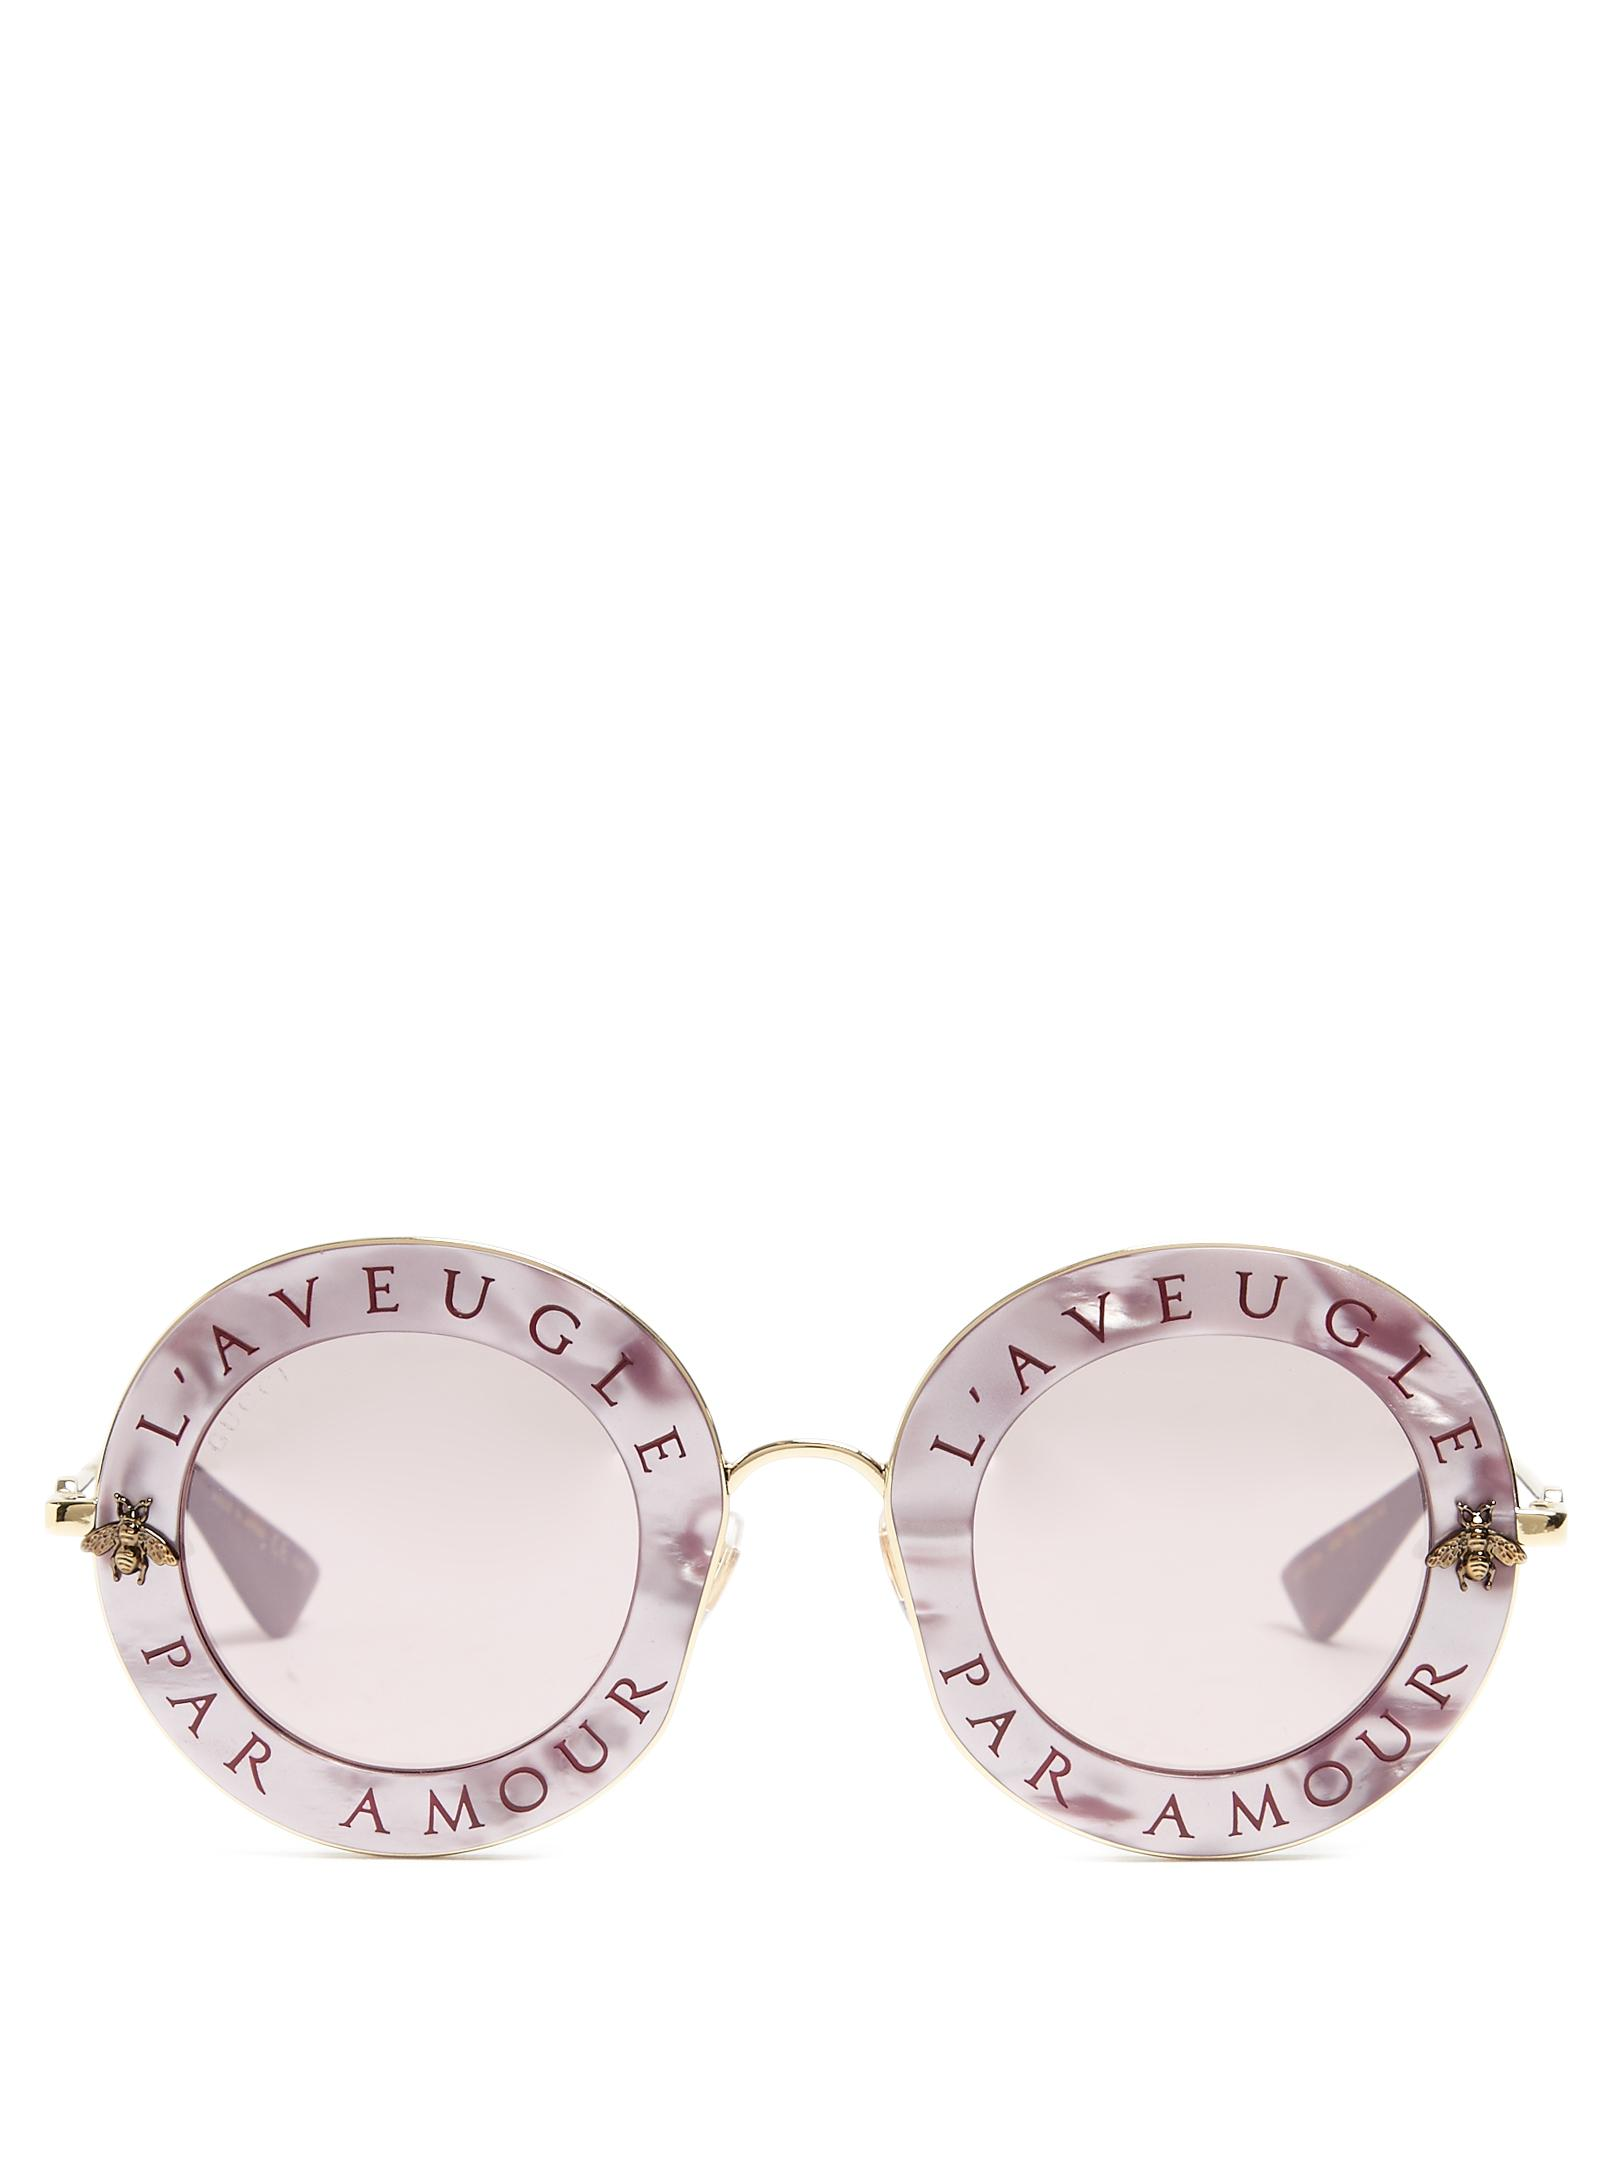 f97cce5a557 Lyst - Gucci L aveugle Par Amour Metal Sunglasses in Pink